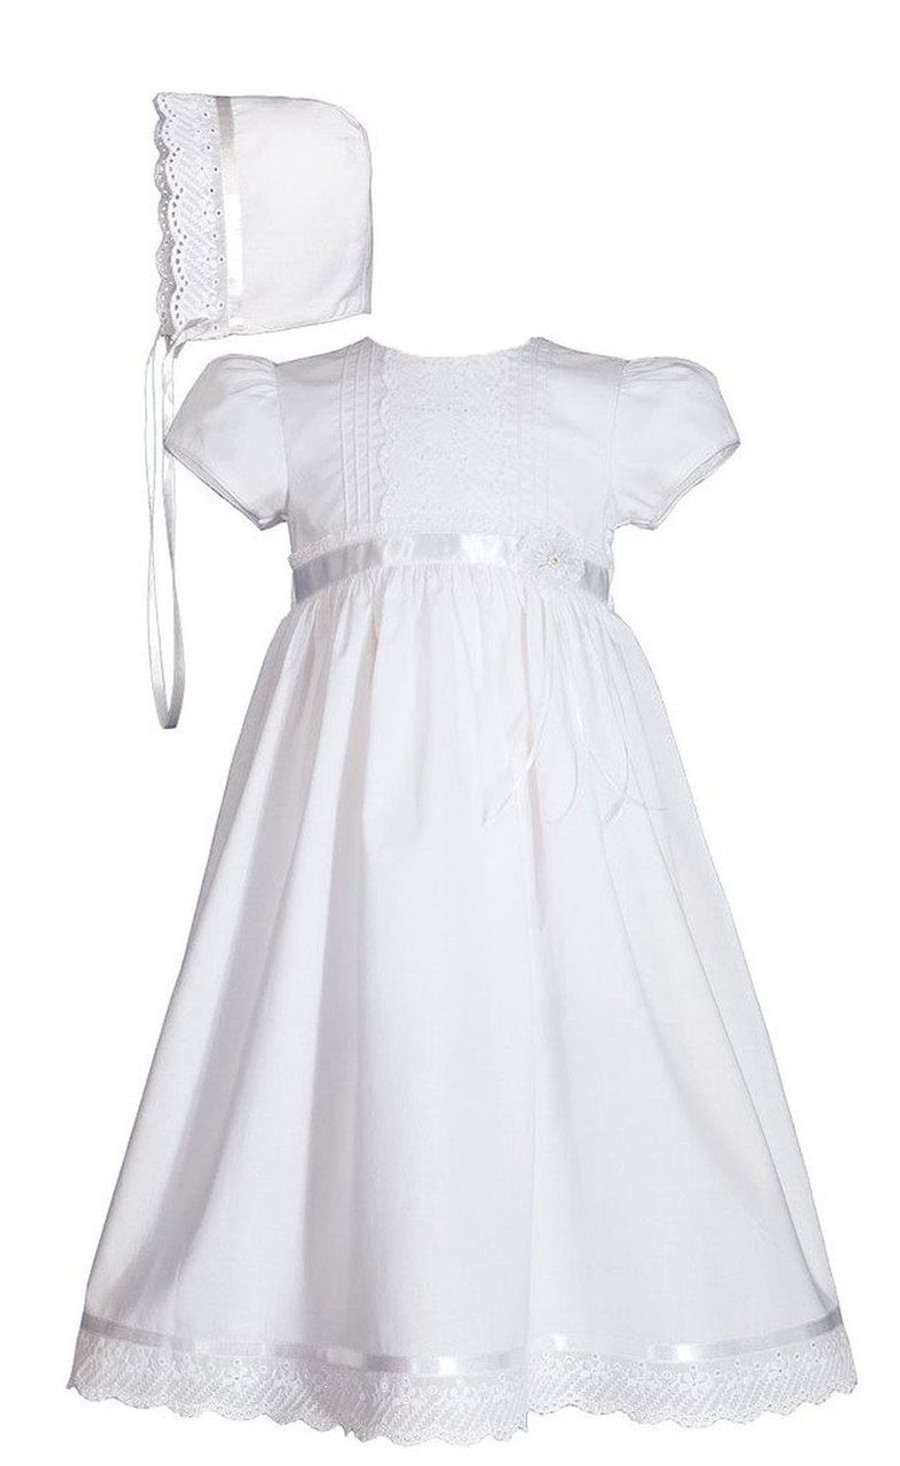 Christening Gown Baptism Gown with Lace and Ribbon, Girls 24″ Cotton Dress